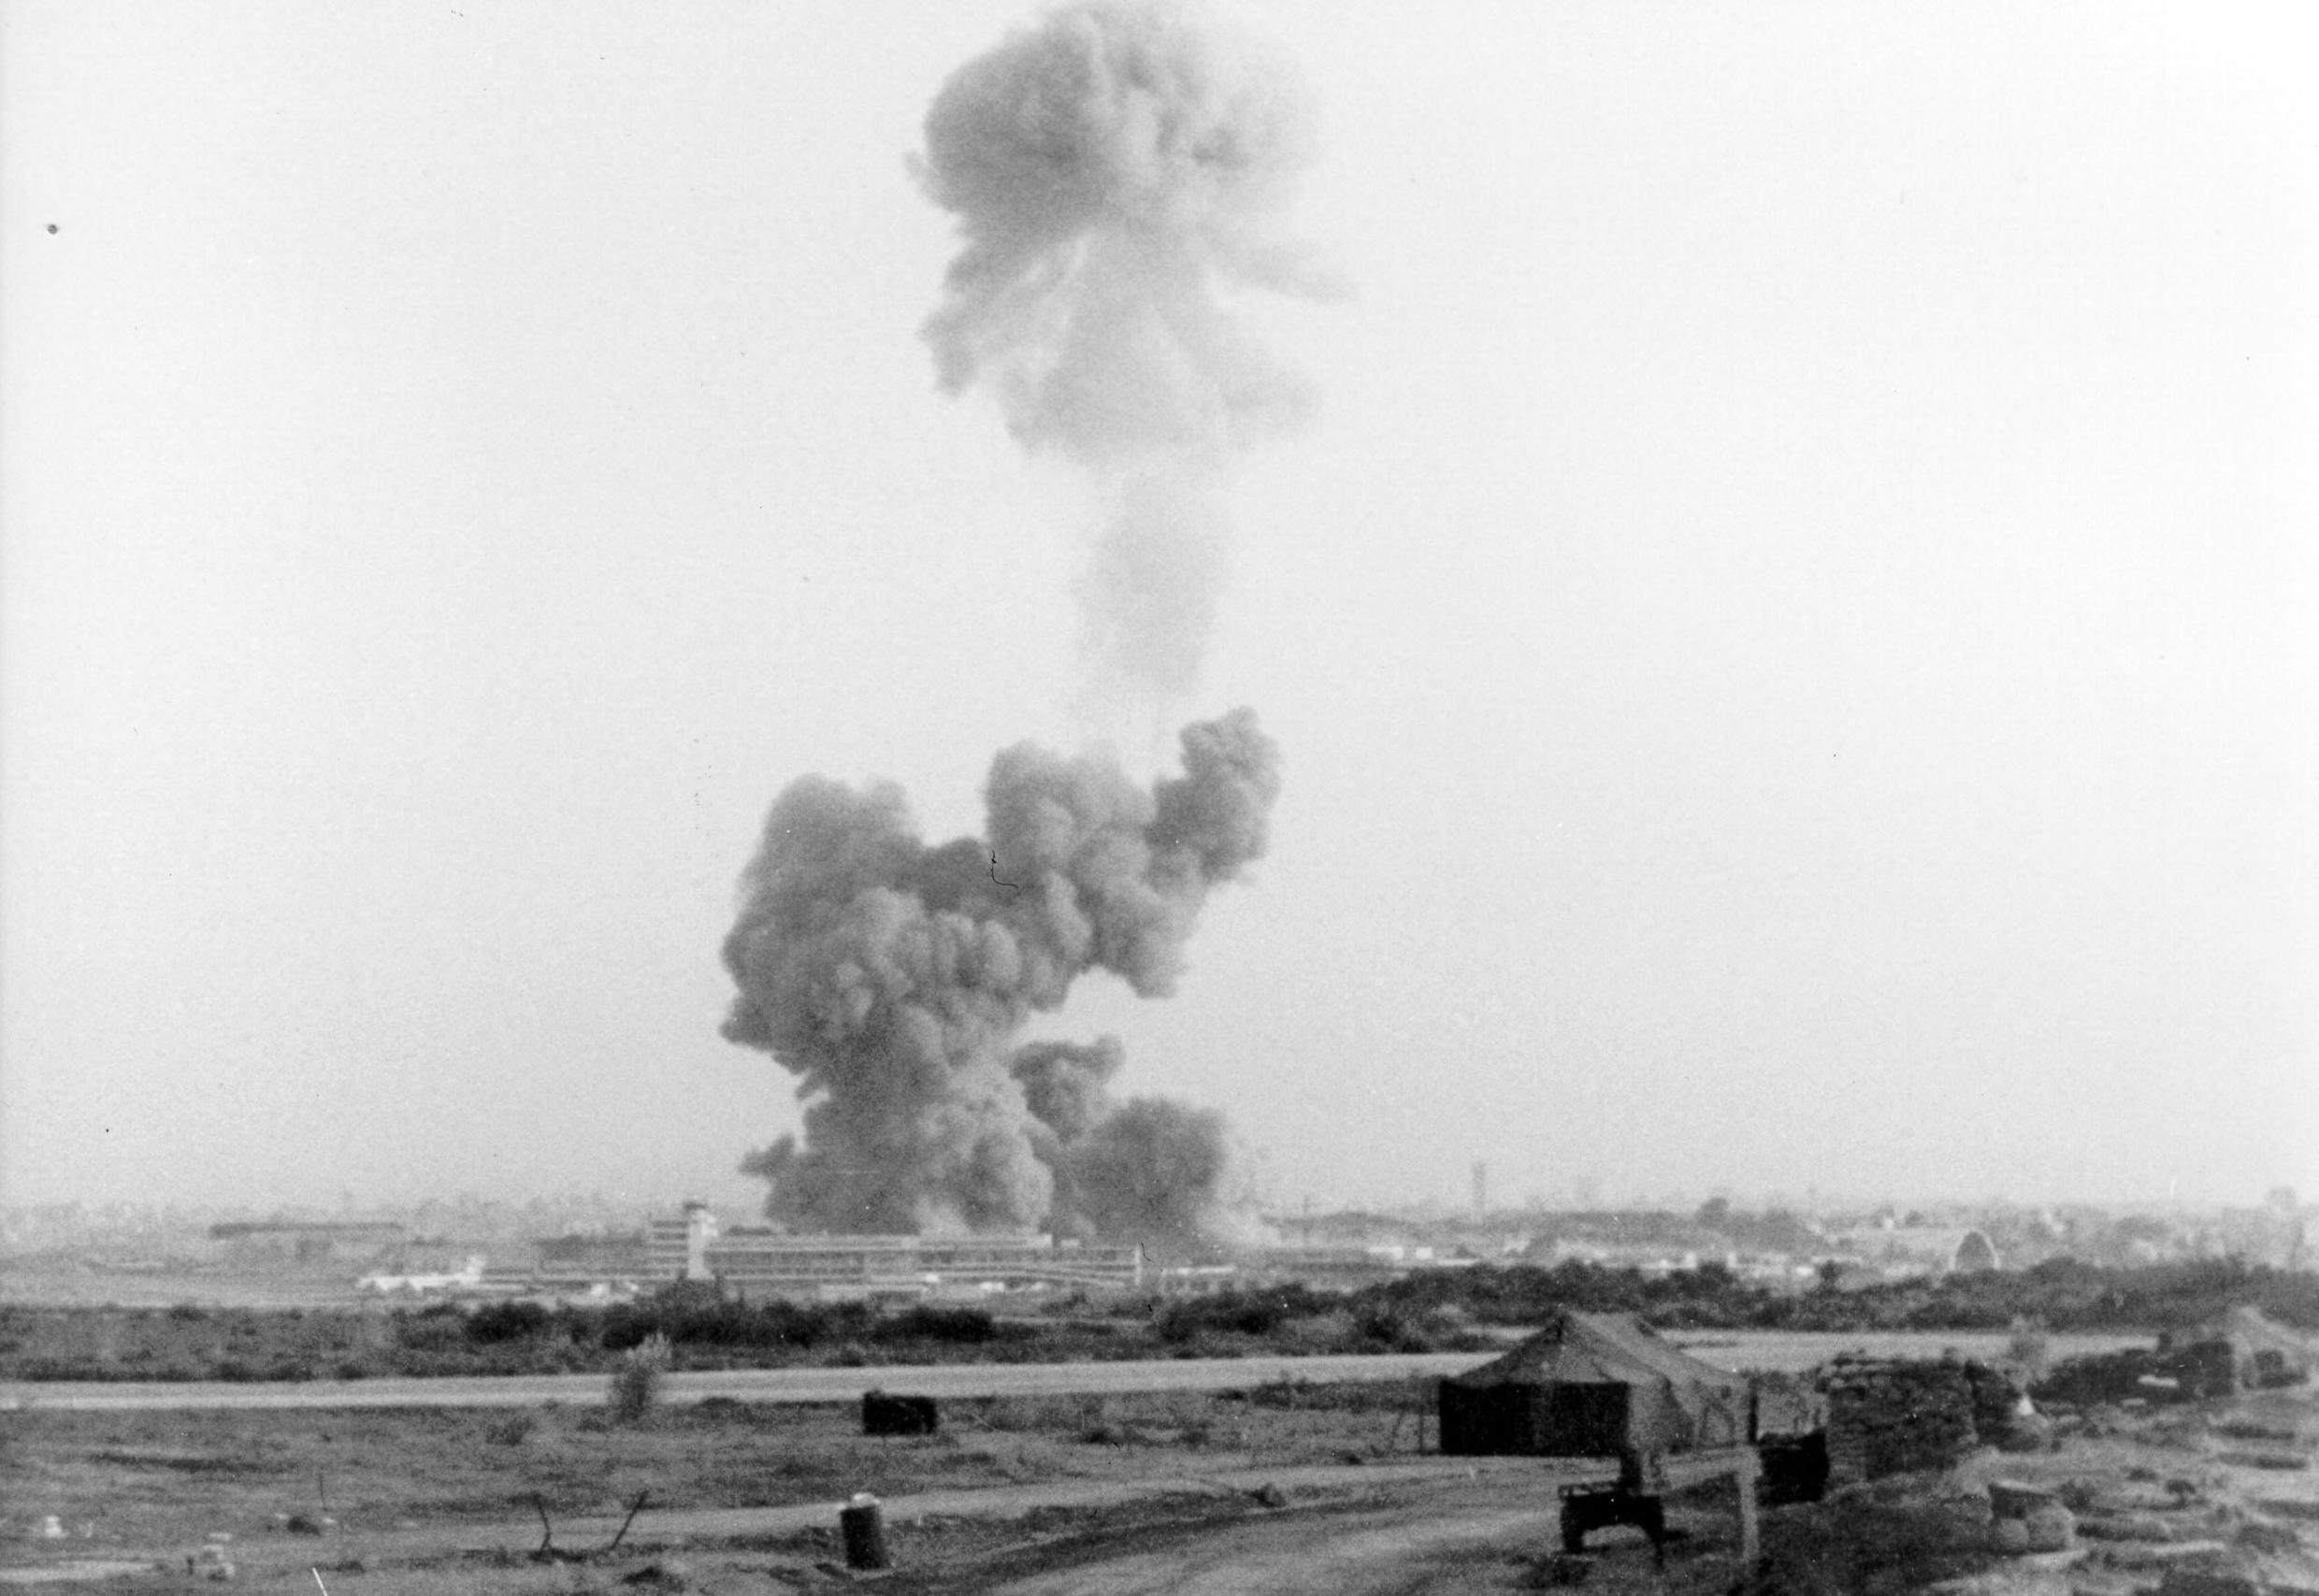 """The 1983 explosion of the Marine Corps building in Beirut, Lebanon, created a large cloud of smoke that was visible from miles away. The attack killed 307 people: 241 U.S. and 58 French military personnel, six civilians, and two attackers.The US accused Iran of being behind the bombing and called the country a """"sponsor of international terrorism"""" one year later."""